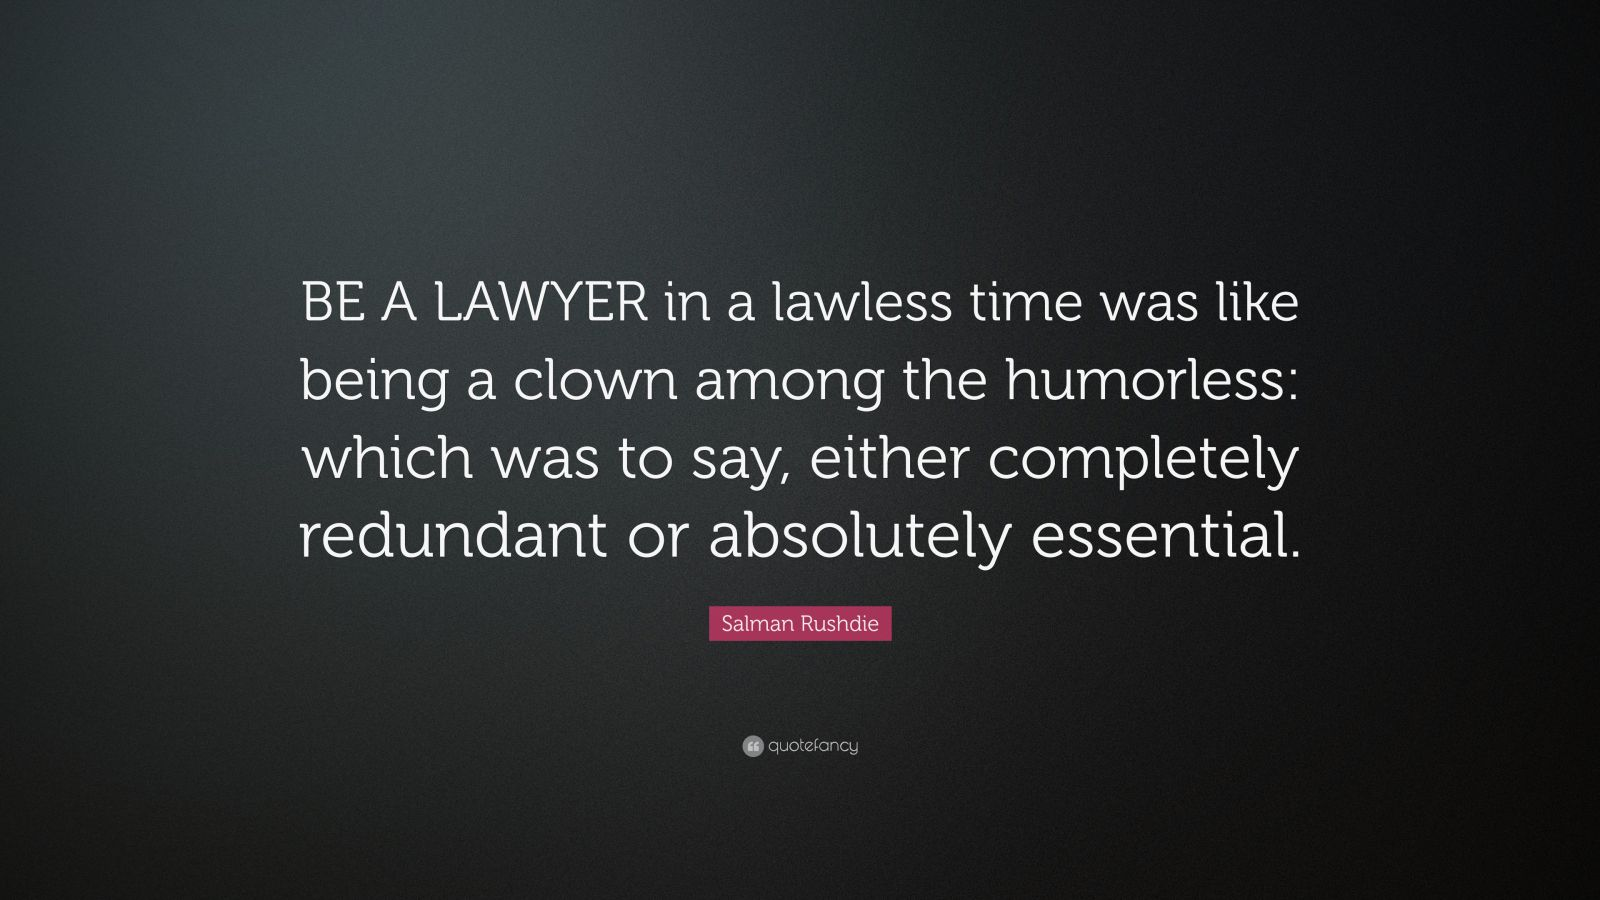 "Salman Rushdie Quote: ""BE A LAWYER in a lawless time was like being a clown among the humorless: which was to say, either completely redundant or absolutely essential."""